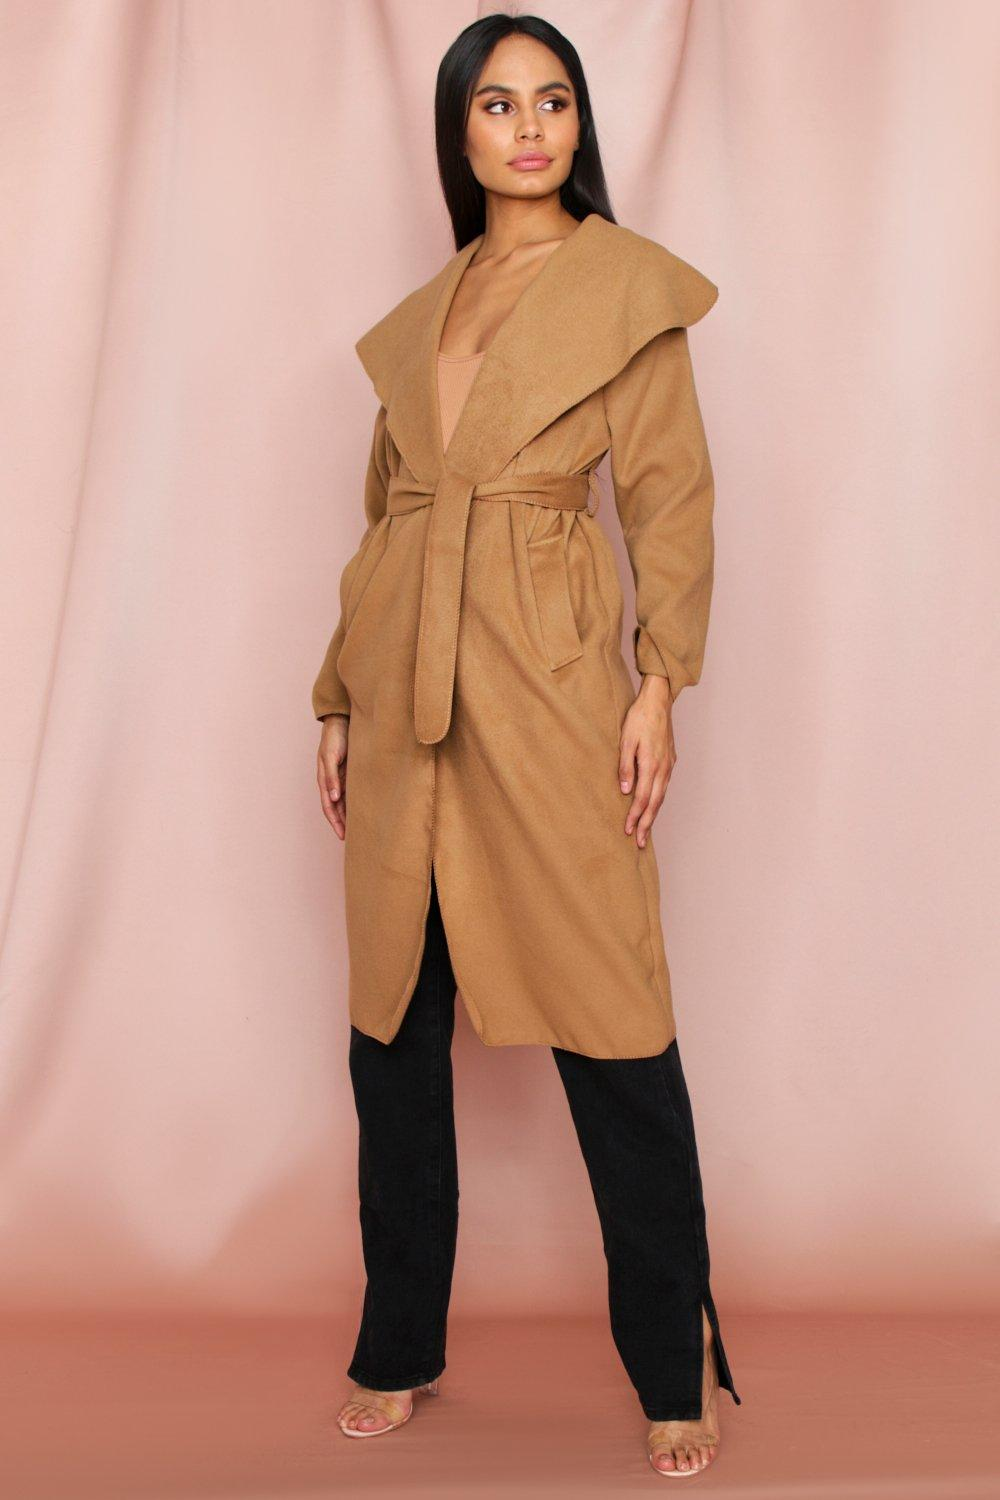 Miss Pap is selling a £60 coat which